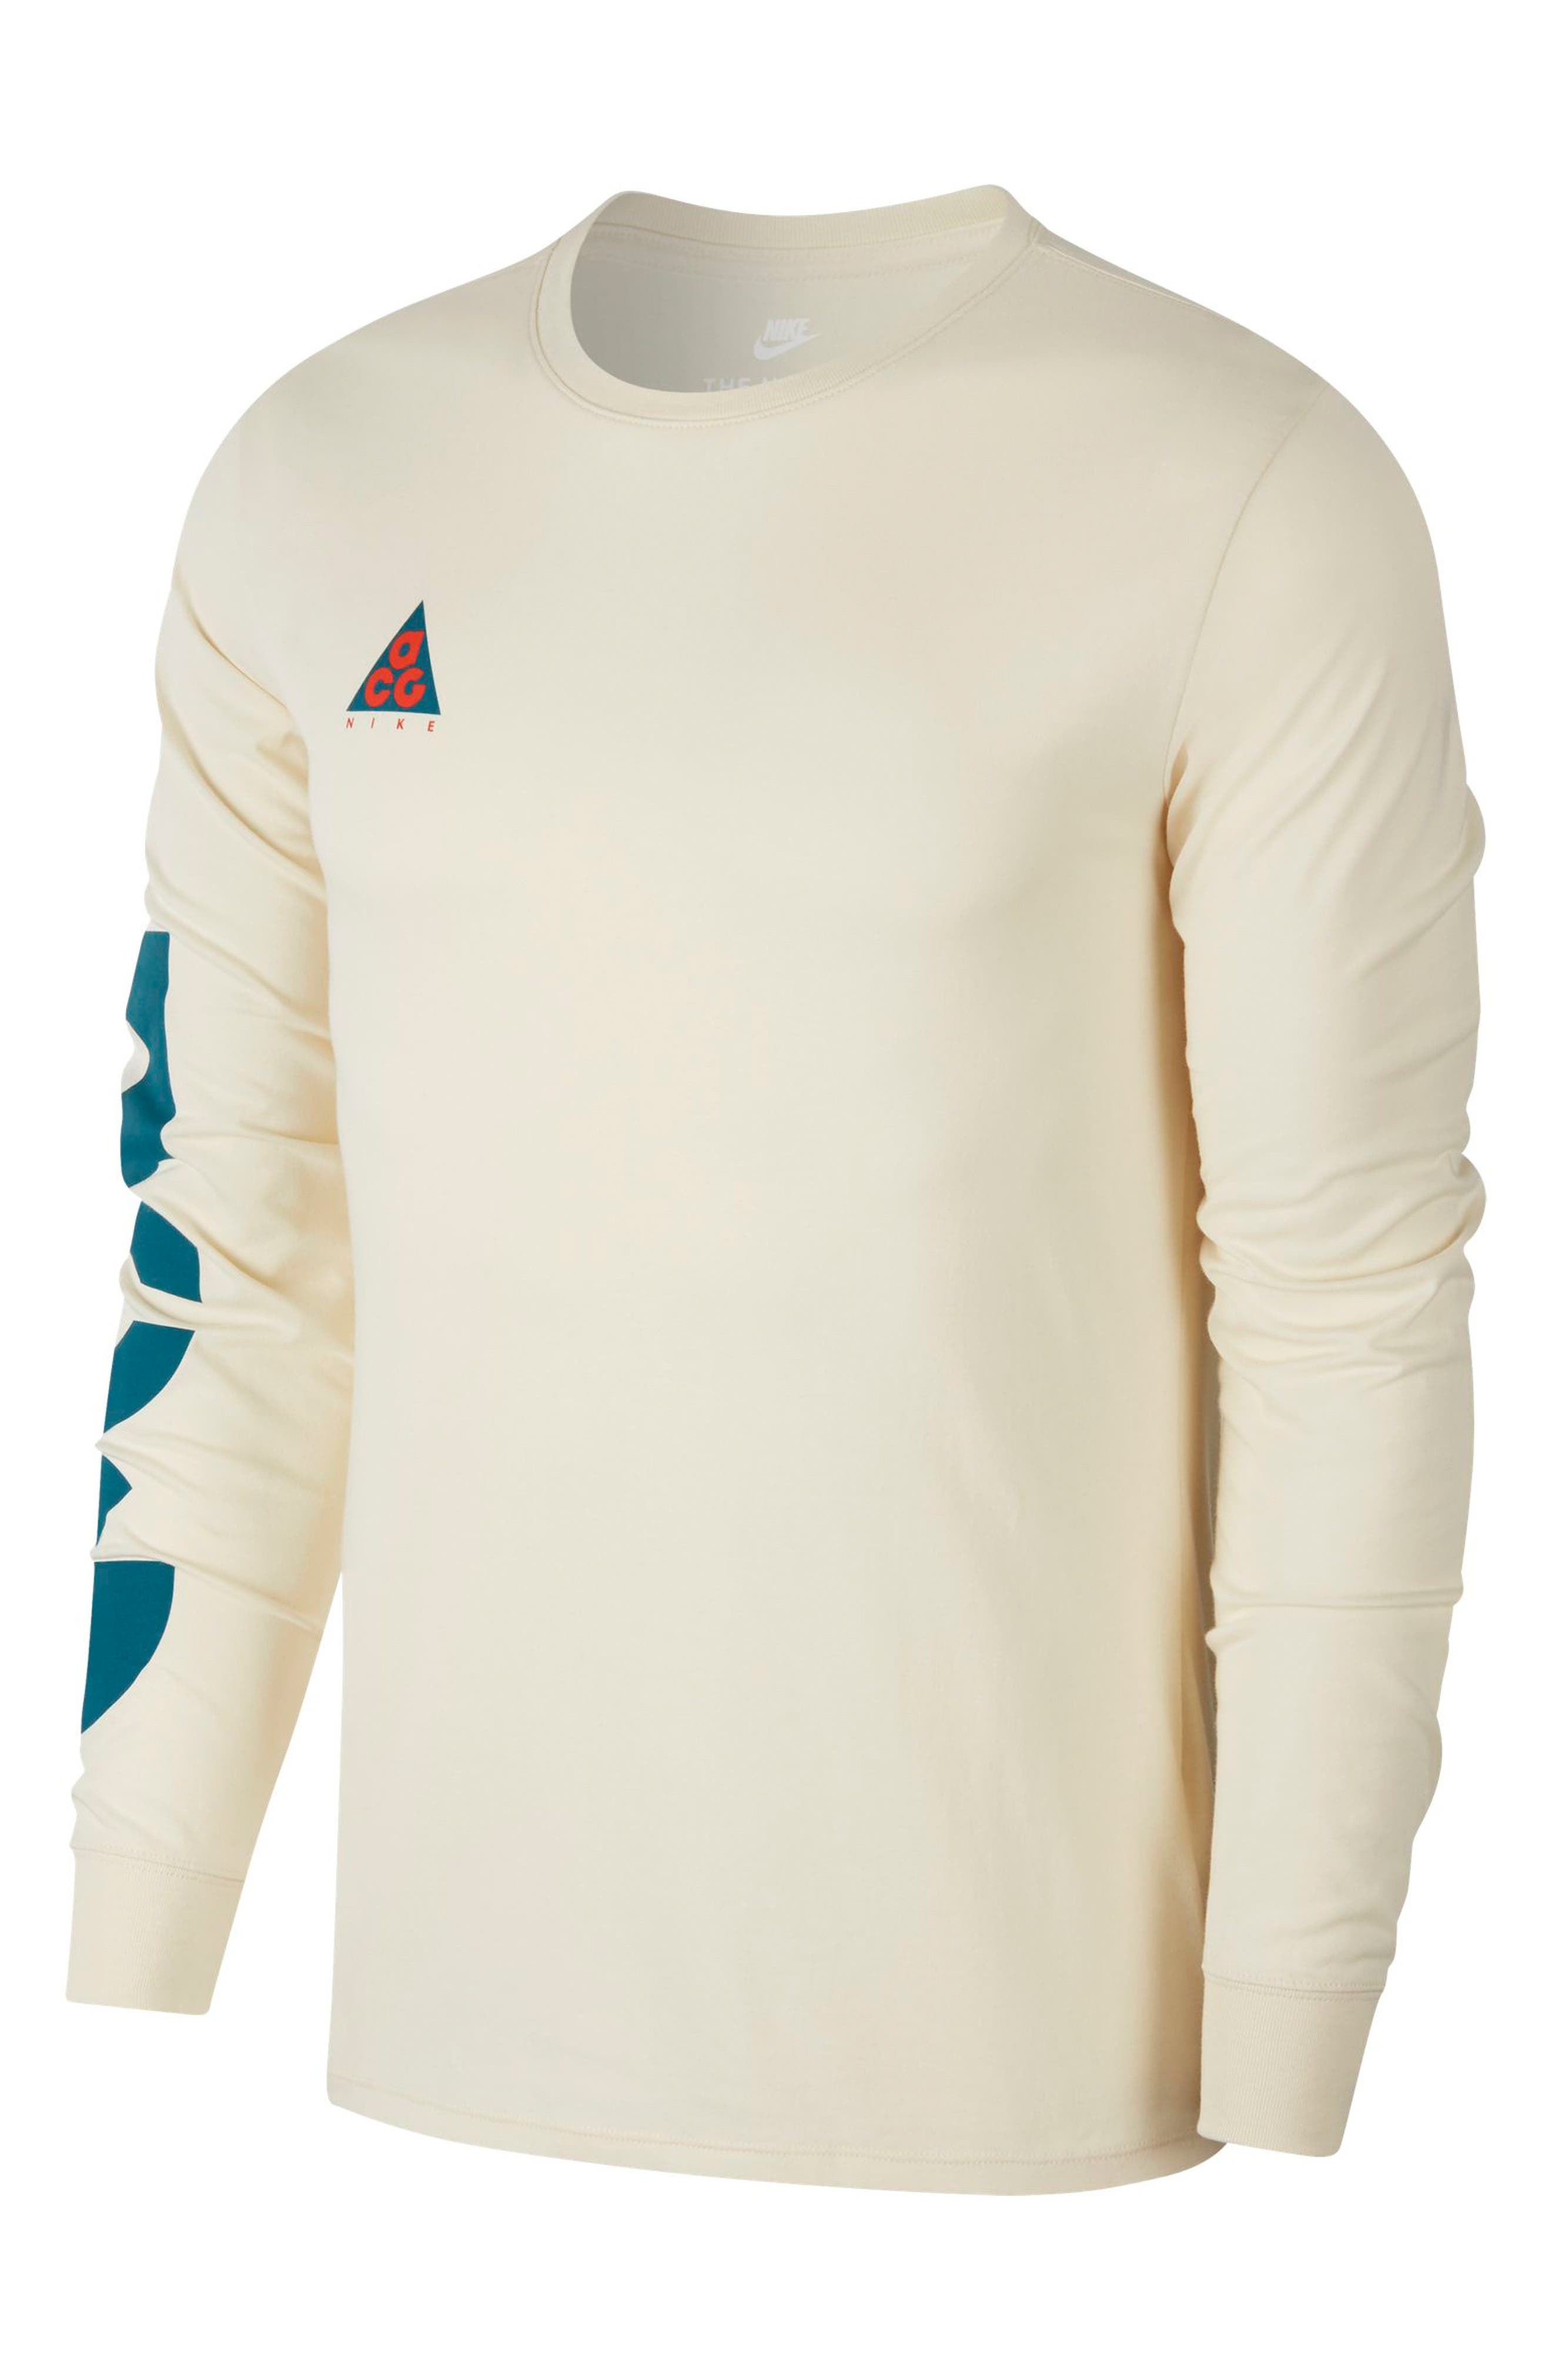 NSW ACG Graphic T-Shirt,                         Main,                         color, LIGHT CREAM/ GEODE TEAL